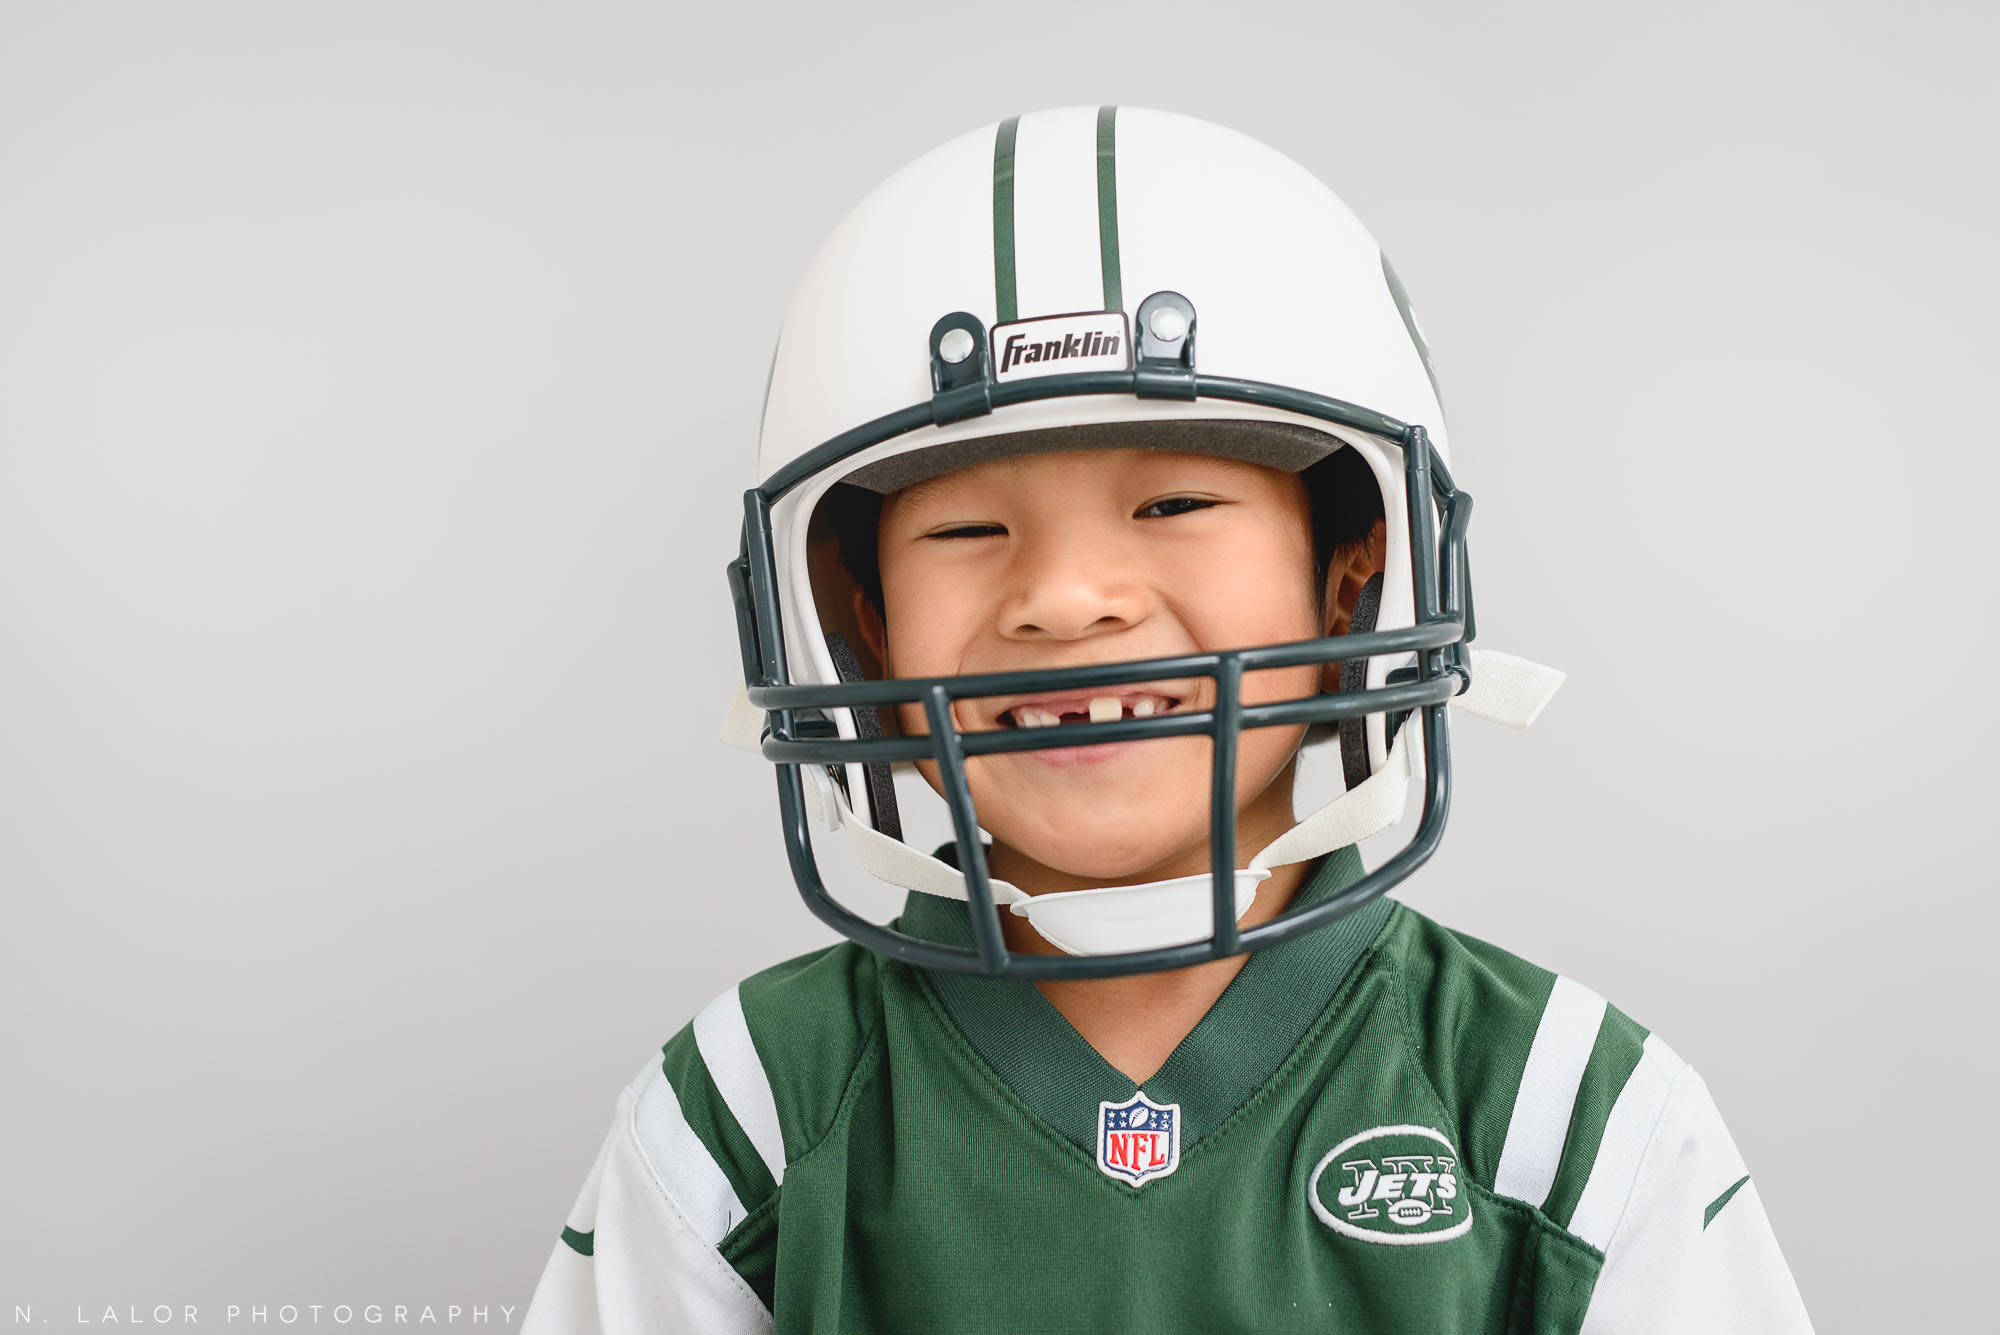 Football player. Halloween Kids Portrait by N. Lalor Photography. Greenwich, Connecticut.